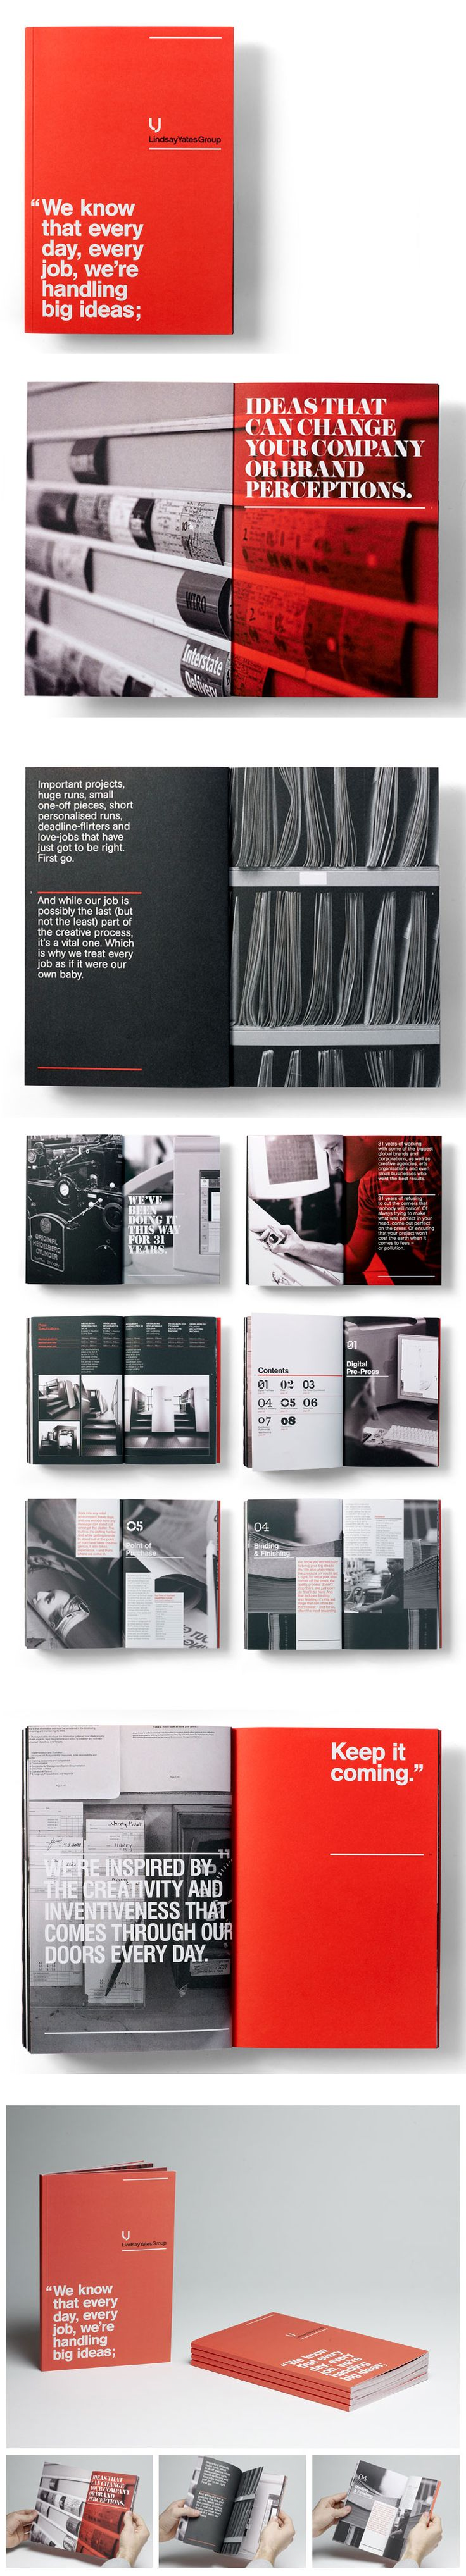 Typography & layout transparent colour wash over photography, emphasis on text, text on photography. #layout